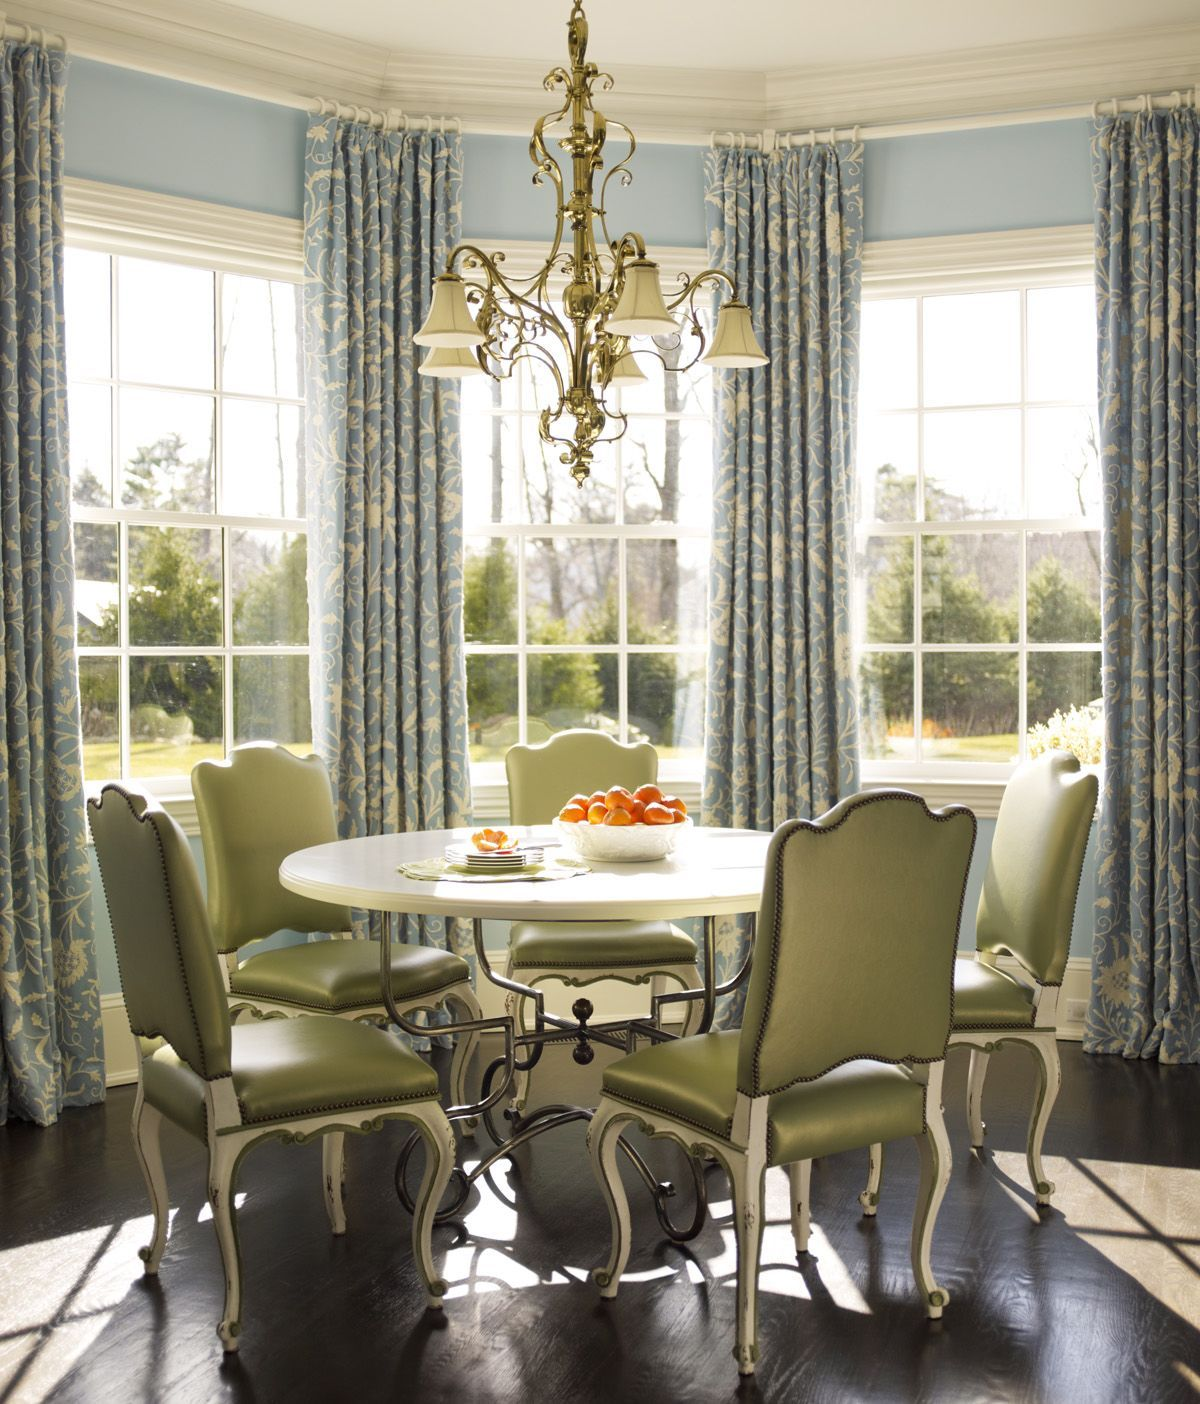 Pin By Wayfair Com On Shop The Look Dining Room Windows French Country Dining Room Dining Room Design